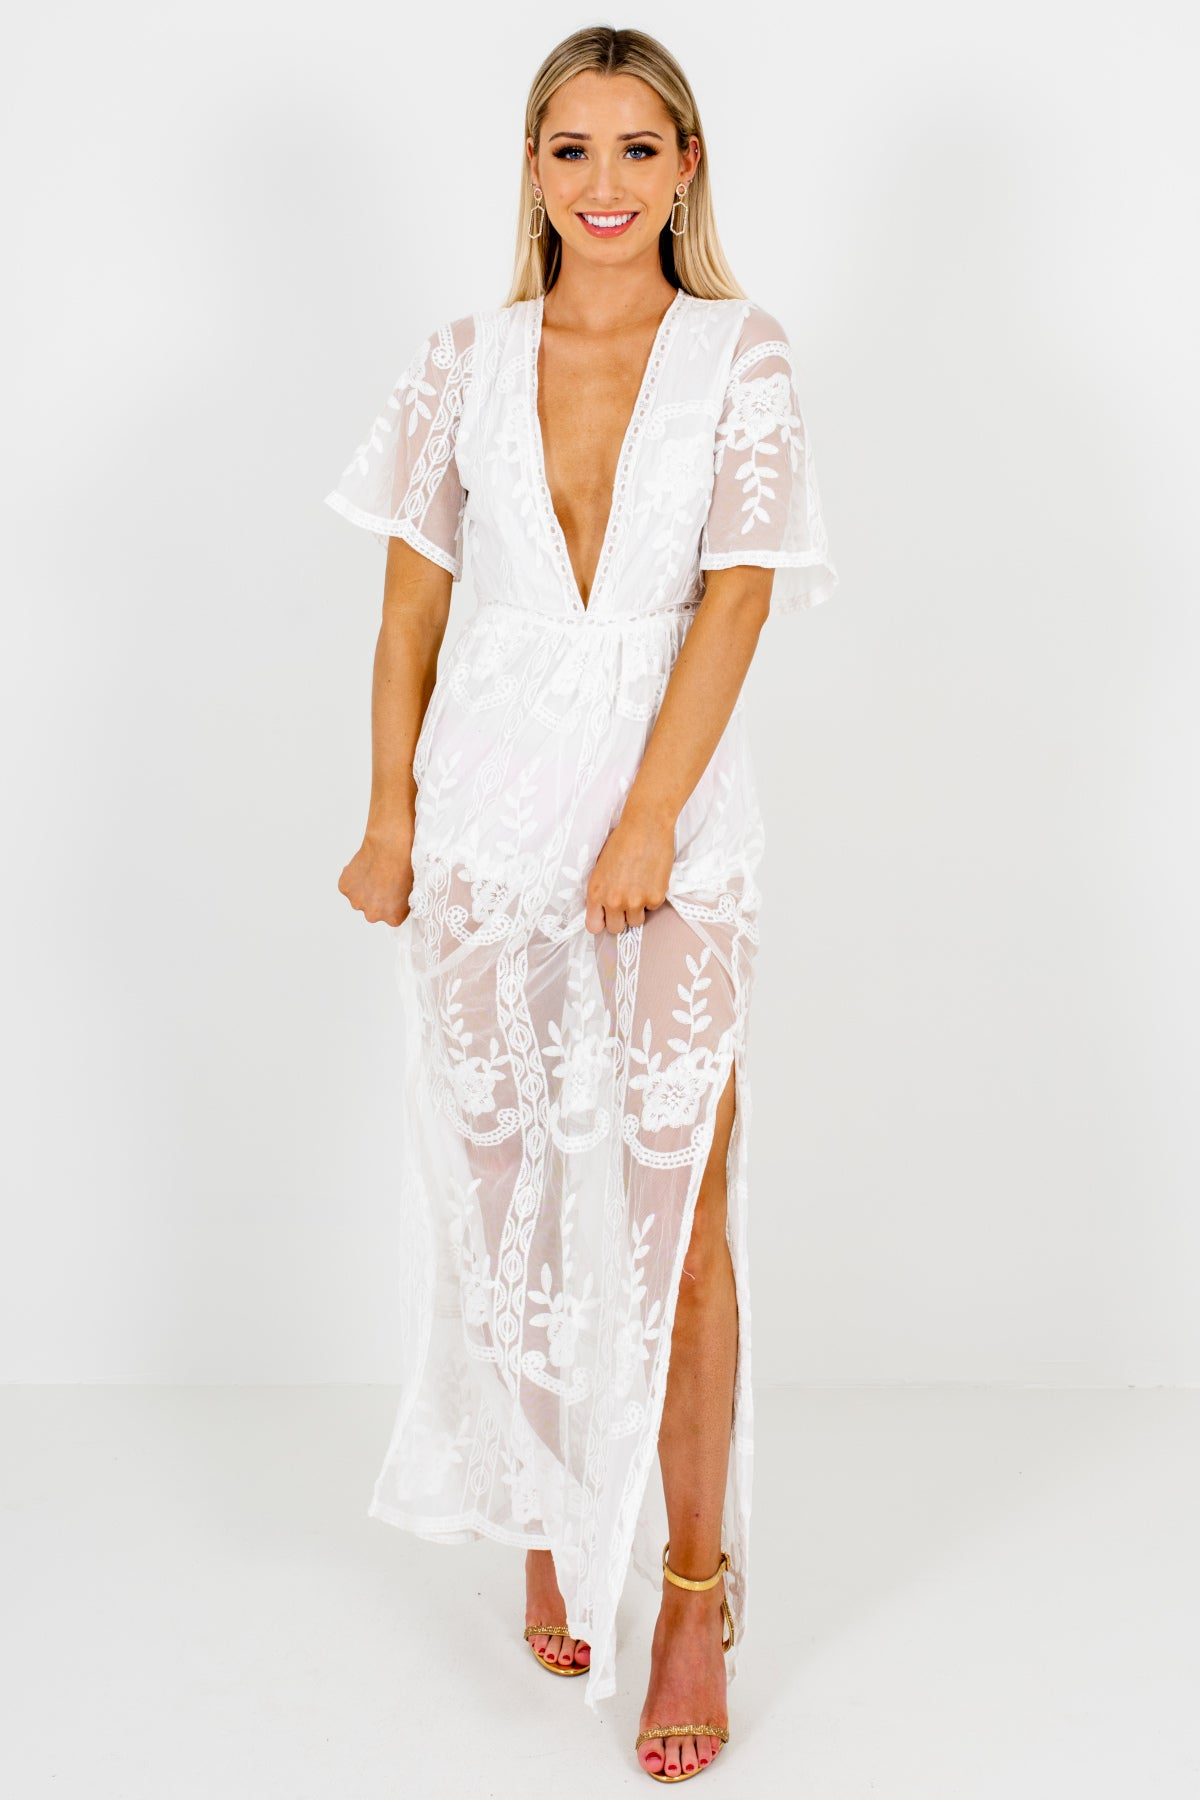 White Floral Crochet Lace Overlay Maxi Length Romper Dresses